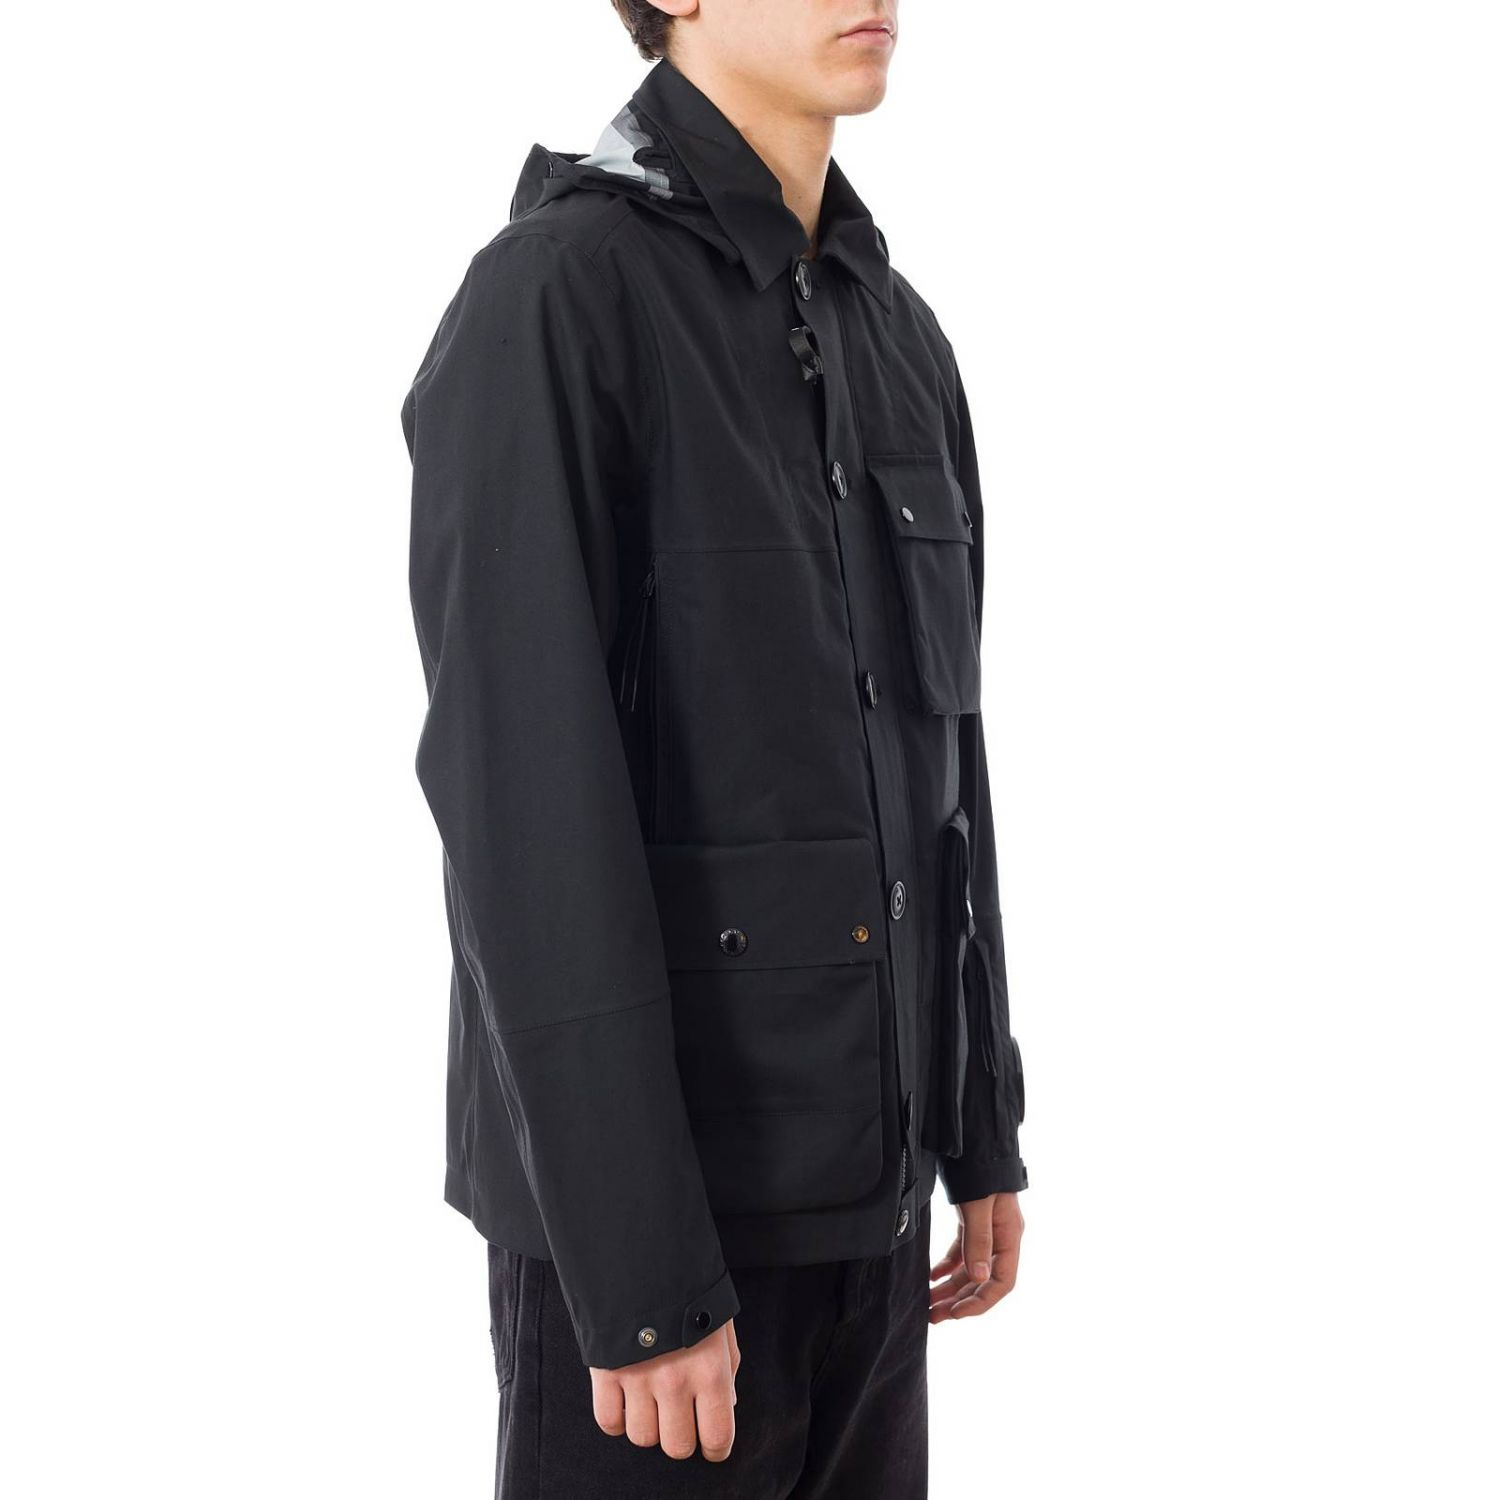 Coat men C.p. Company black 2